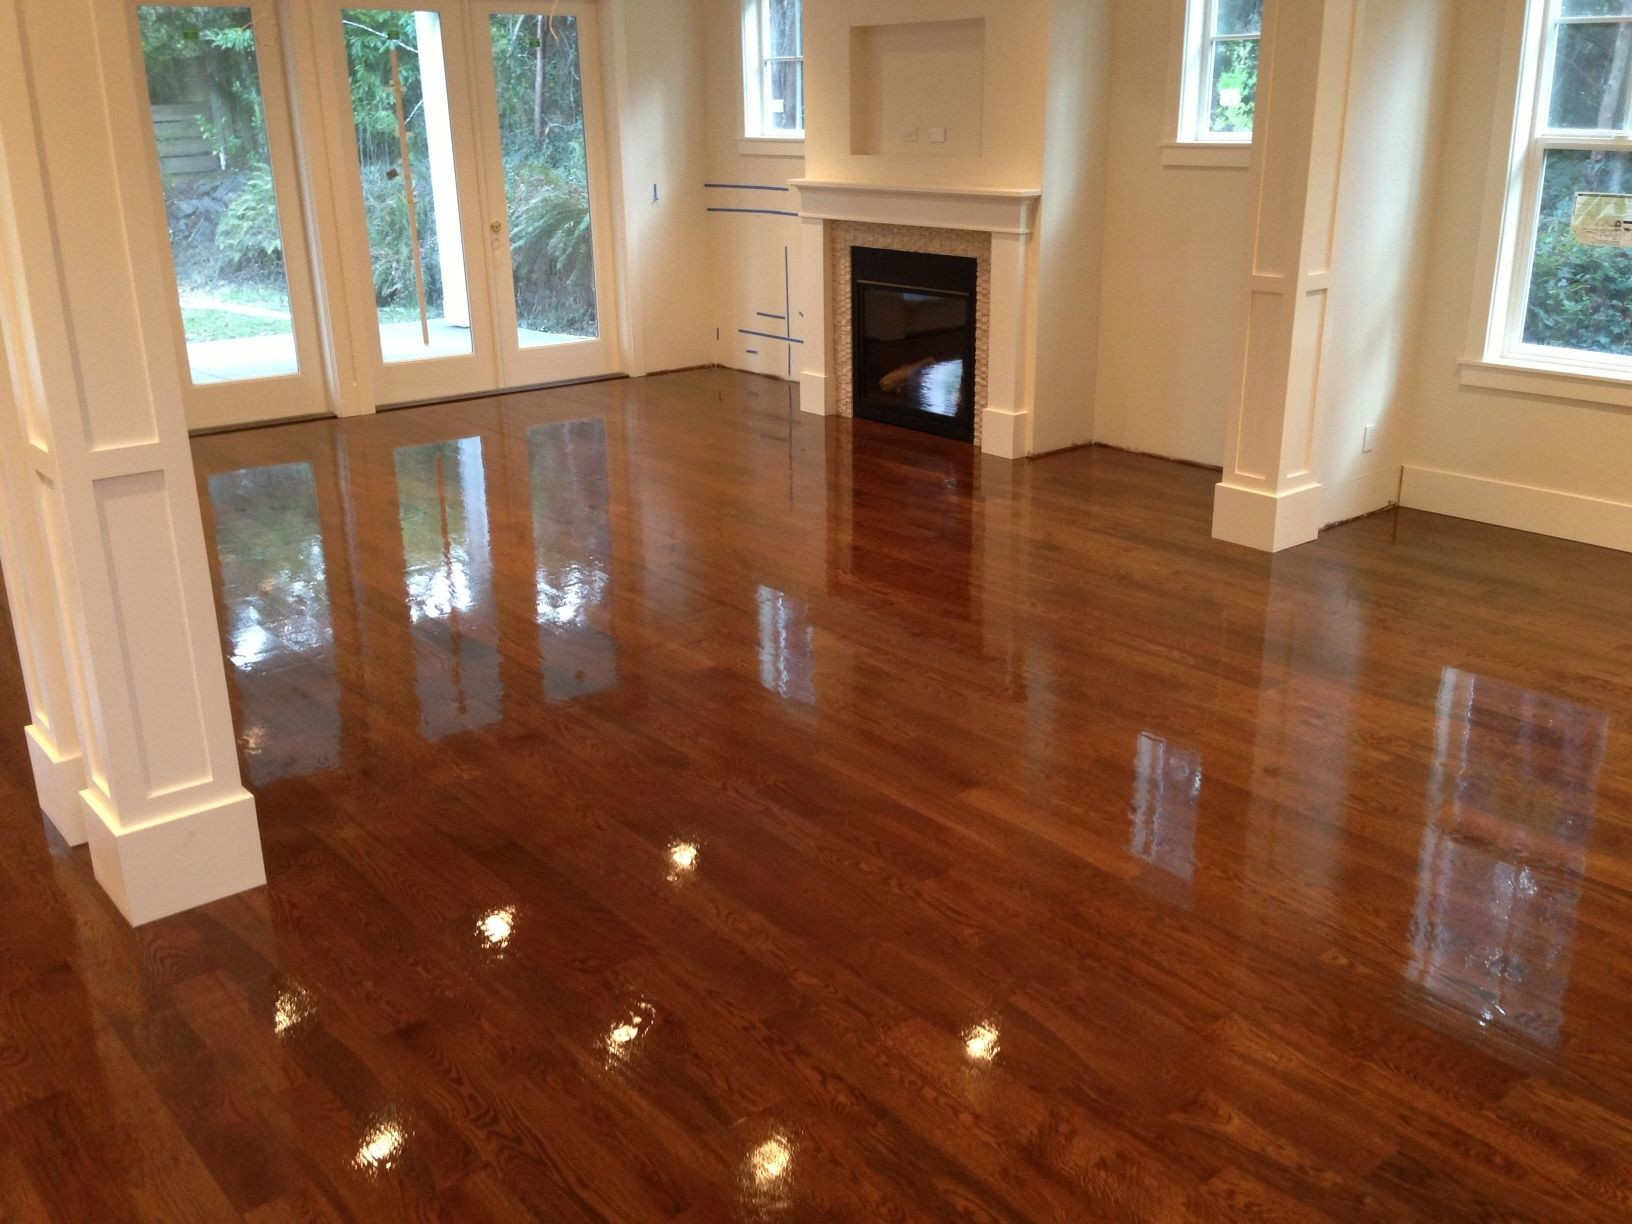 restaining hardwood floors darker of express flooring has outlets in glendale tucson and all neighboring with hardwood floors seattle hardwood floor refinishing and installation seattle tacoma moore floors inc